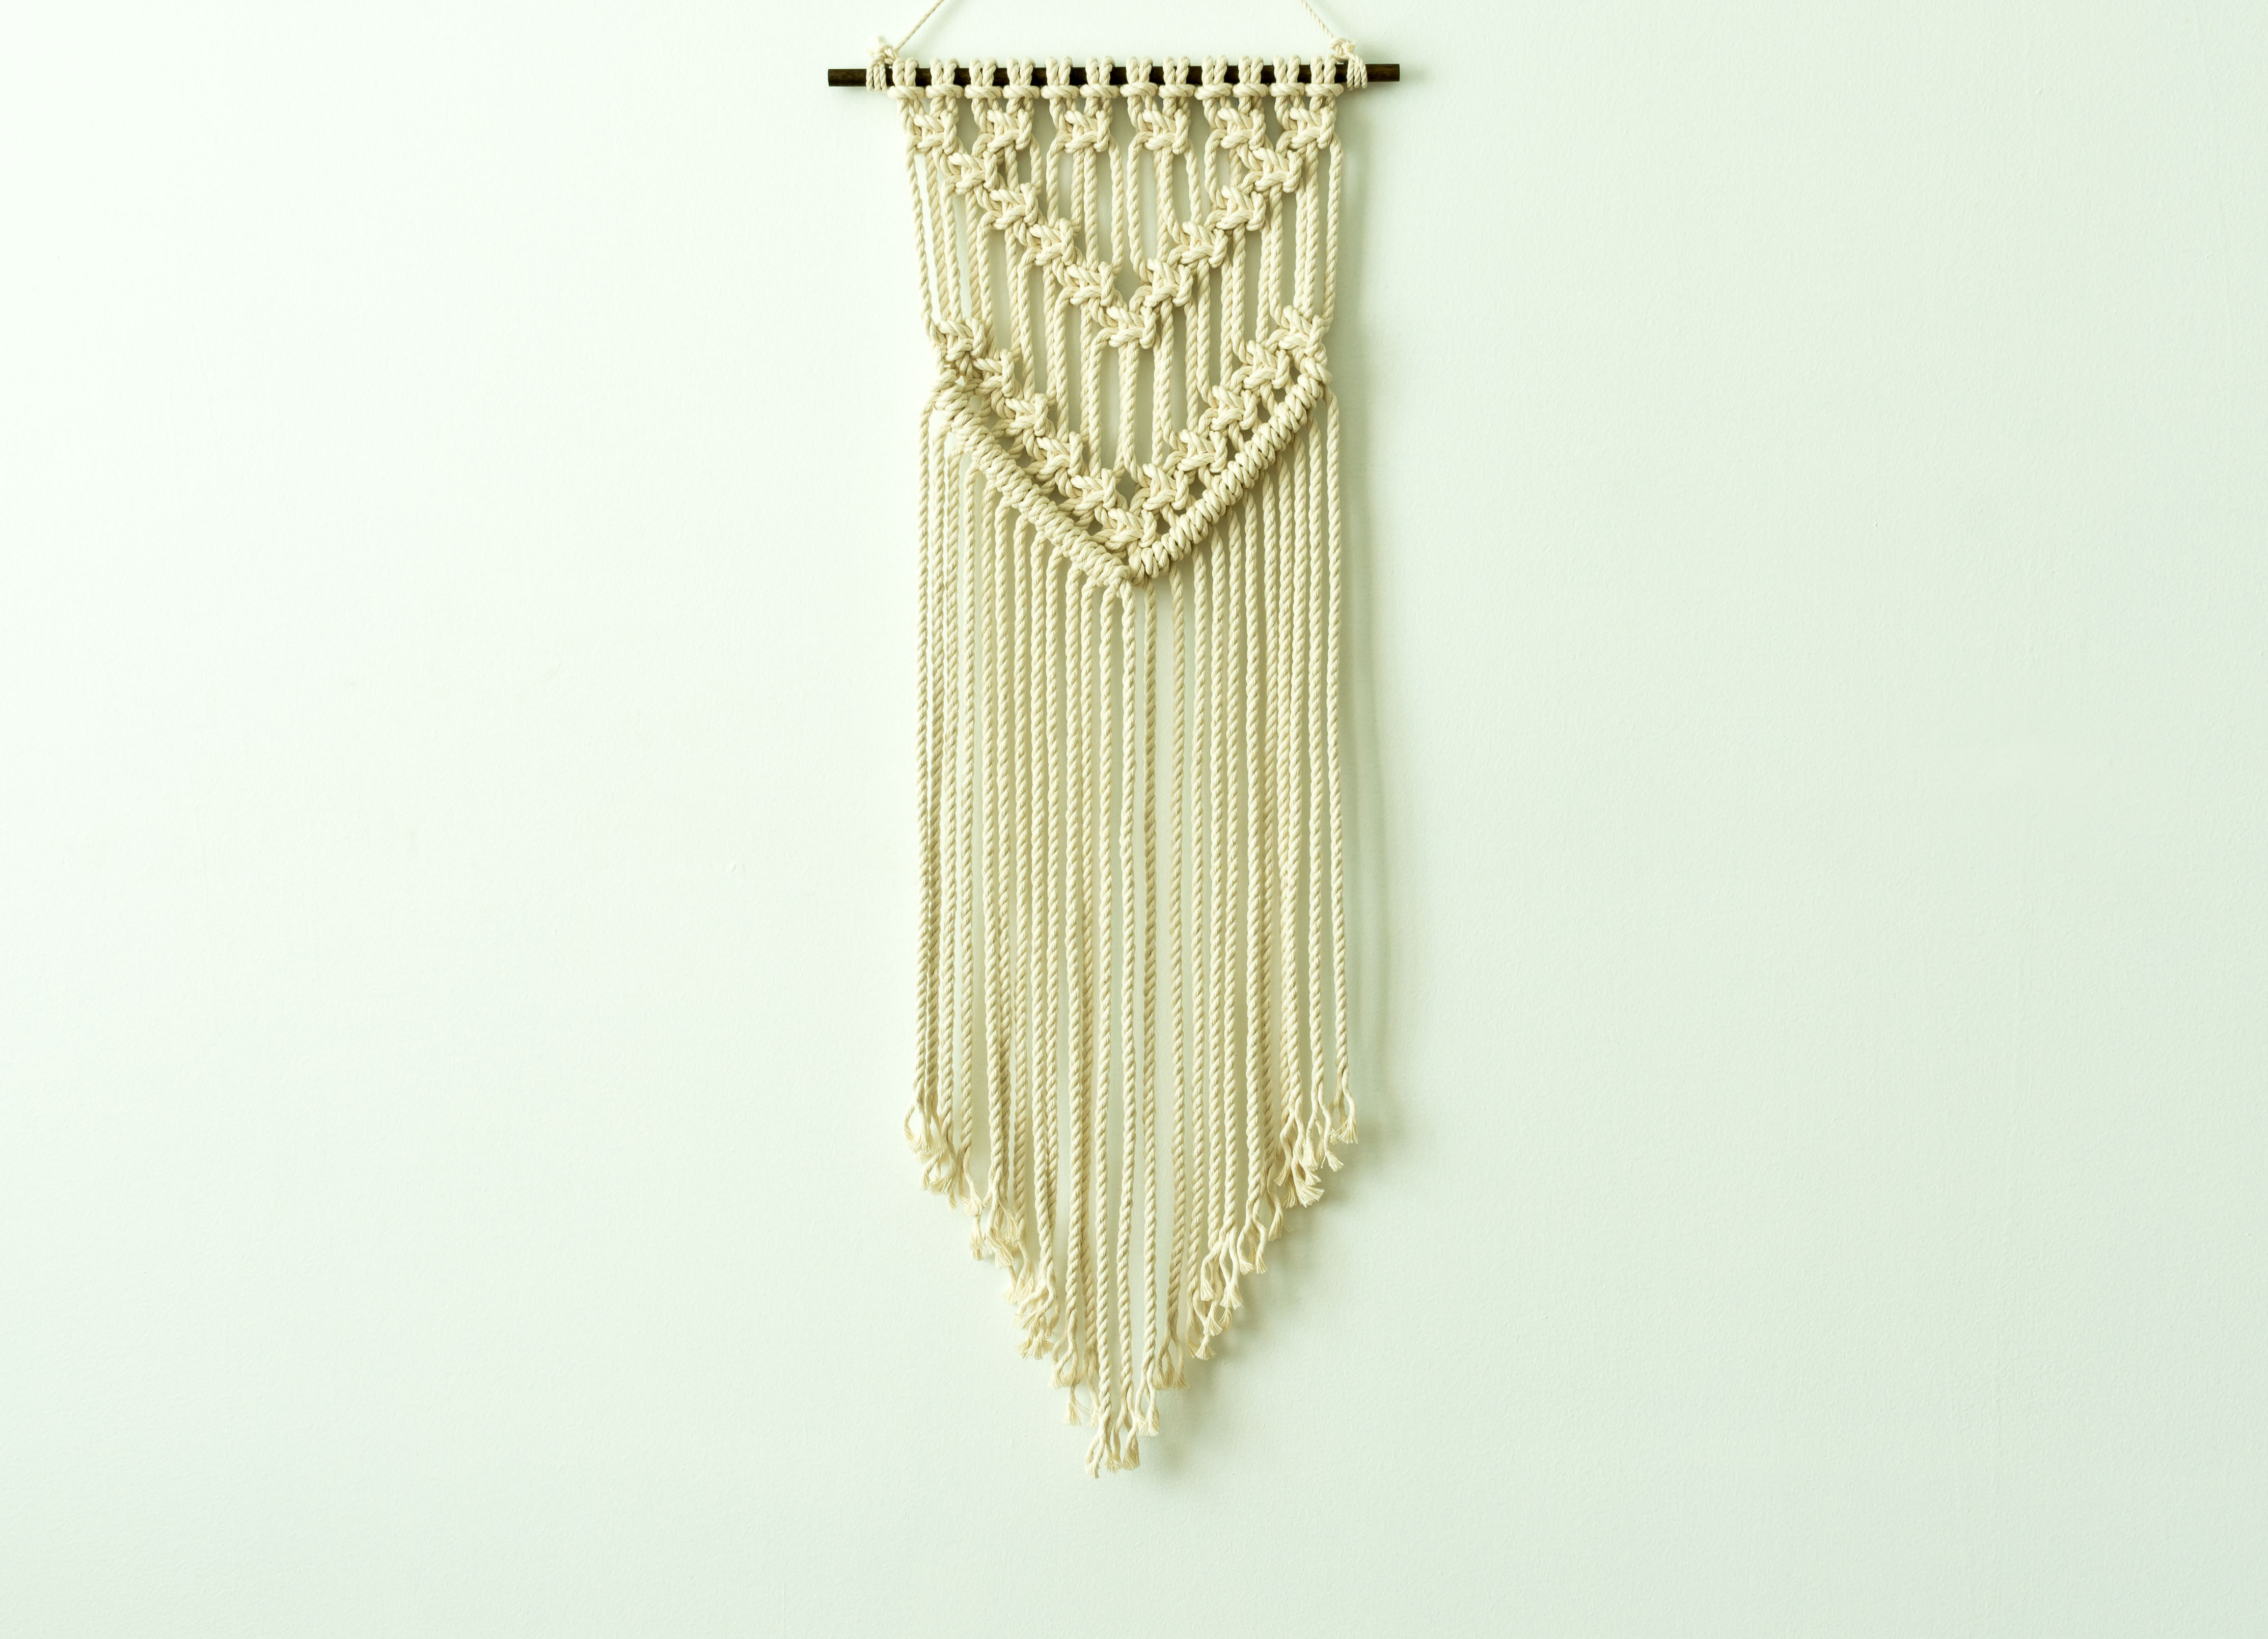 Beautiful Handmade Wall Hanging Ideas Images - The Wall Art ...